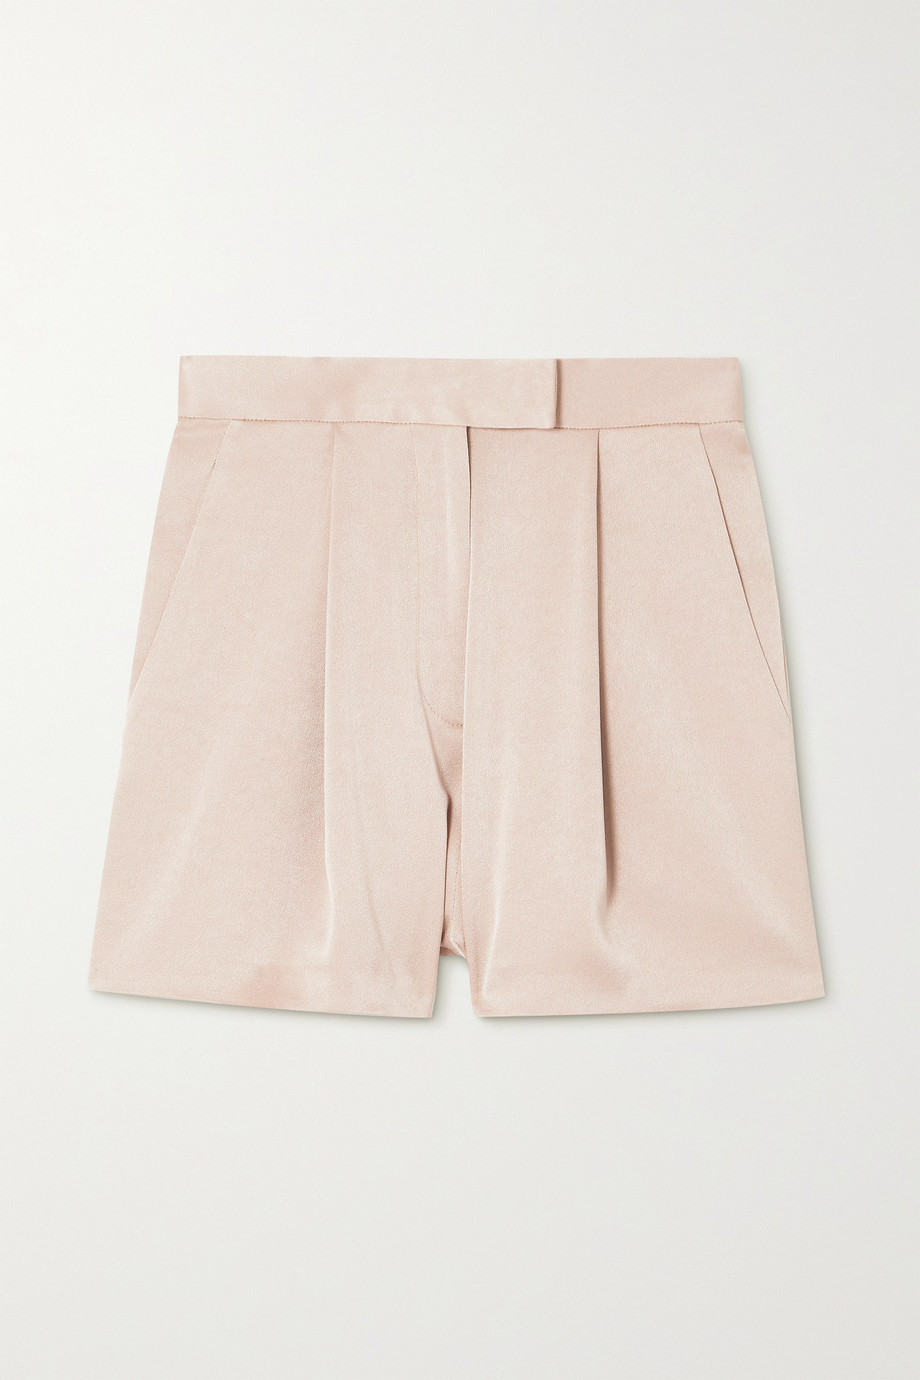 Alex Perry Avery pleated satin-crepe shorts